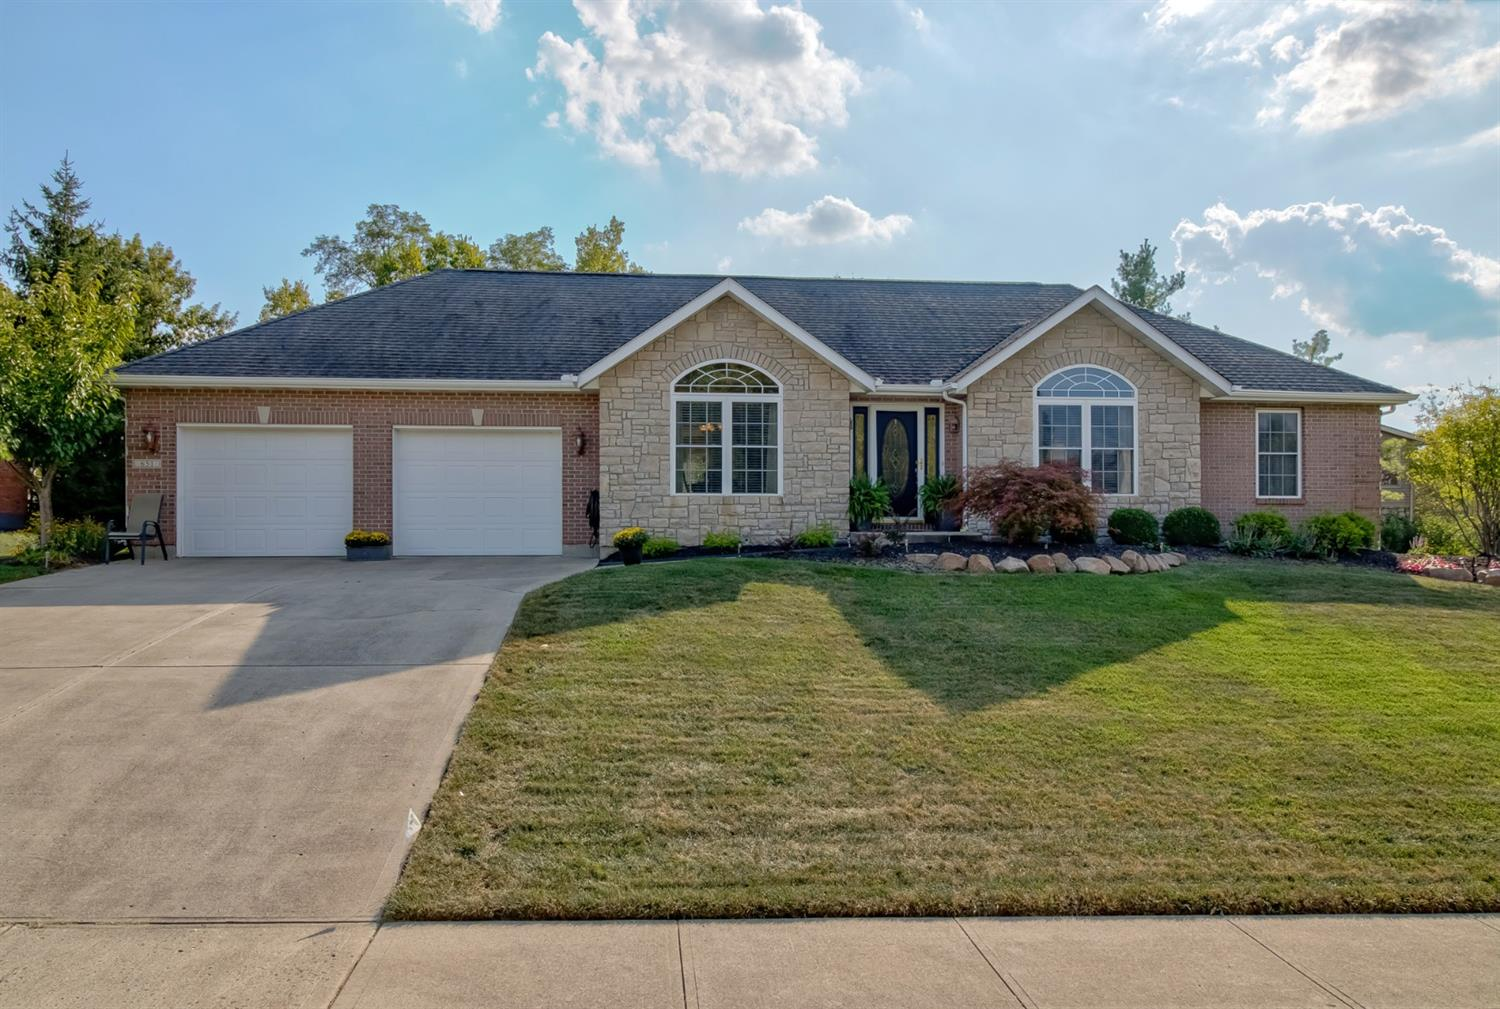 651 Hermay Dr Hamilton West, OH